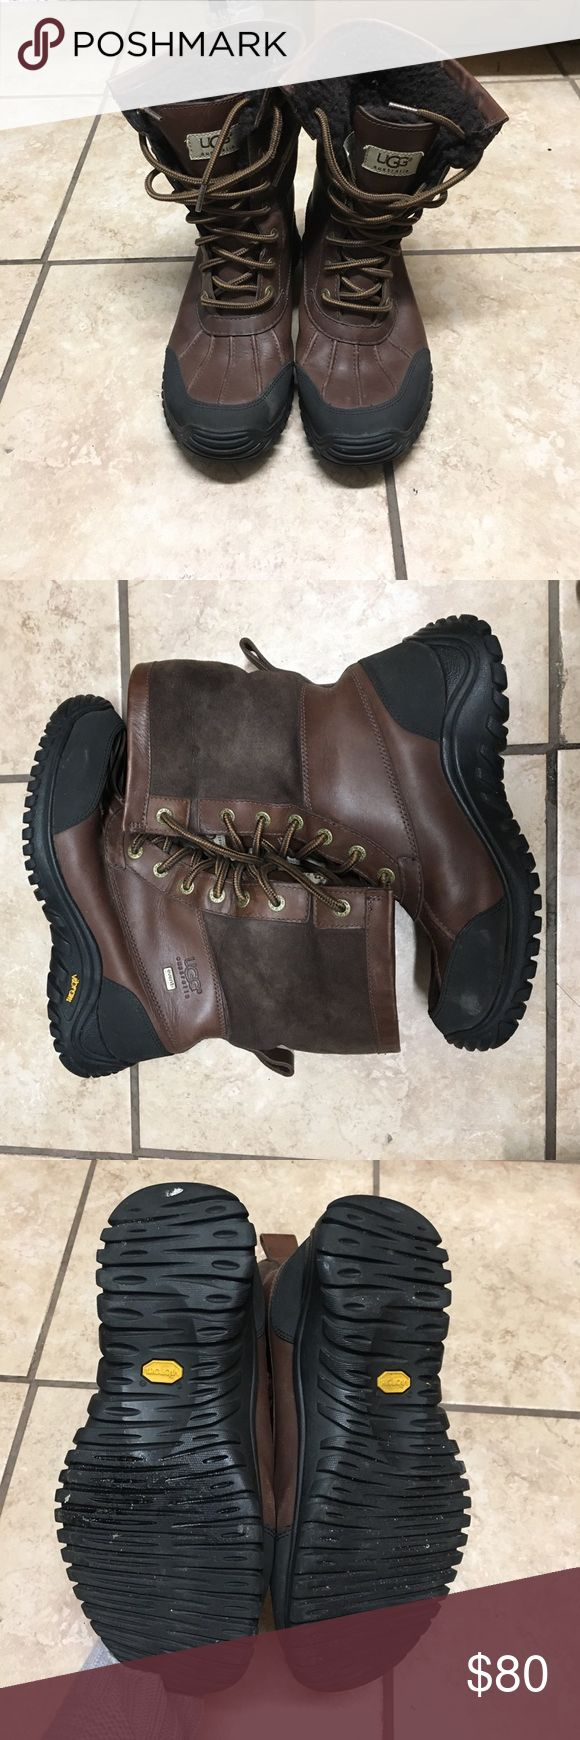 Ugg Adirondack boots. Normal wear and marks from moderate usage. Still in great condition, no odor. UGG Shoes Winter & Rain Boots